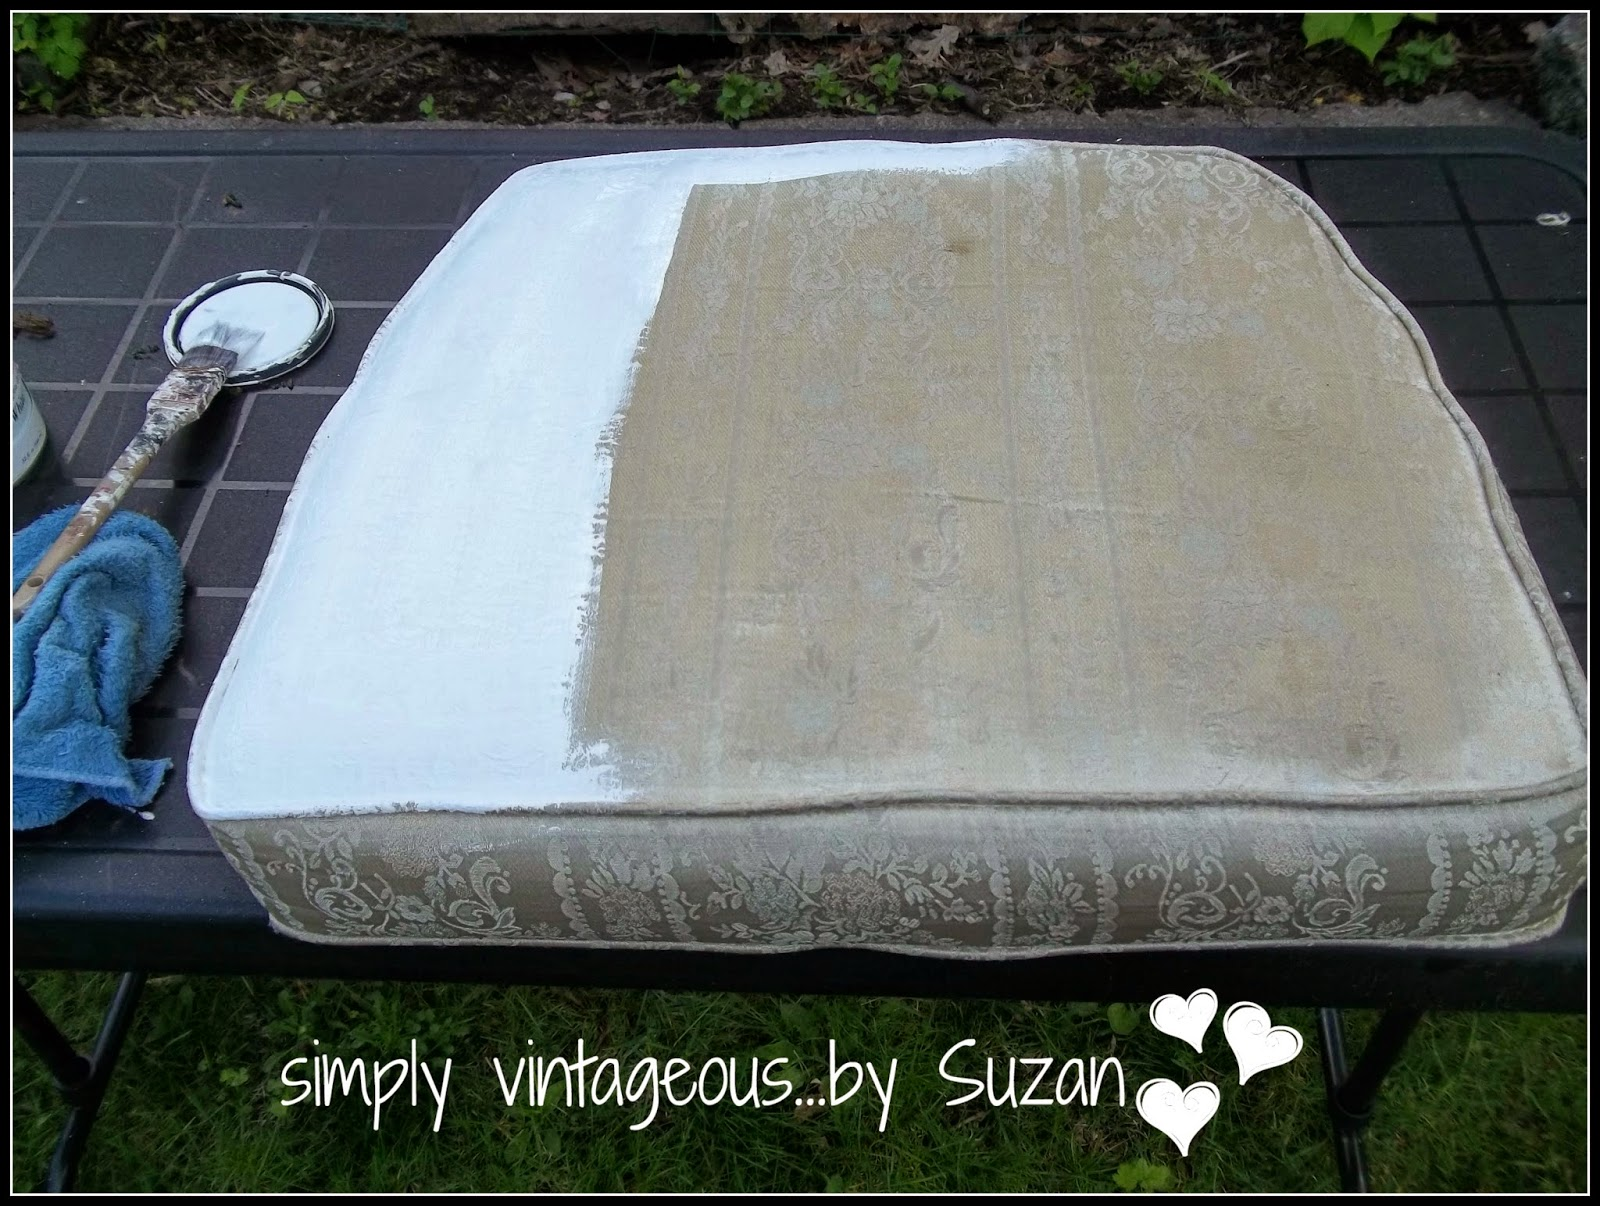 Simply Vintageous By Suzan Painting Regular Furniture To Use Outdoors